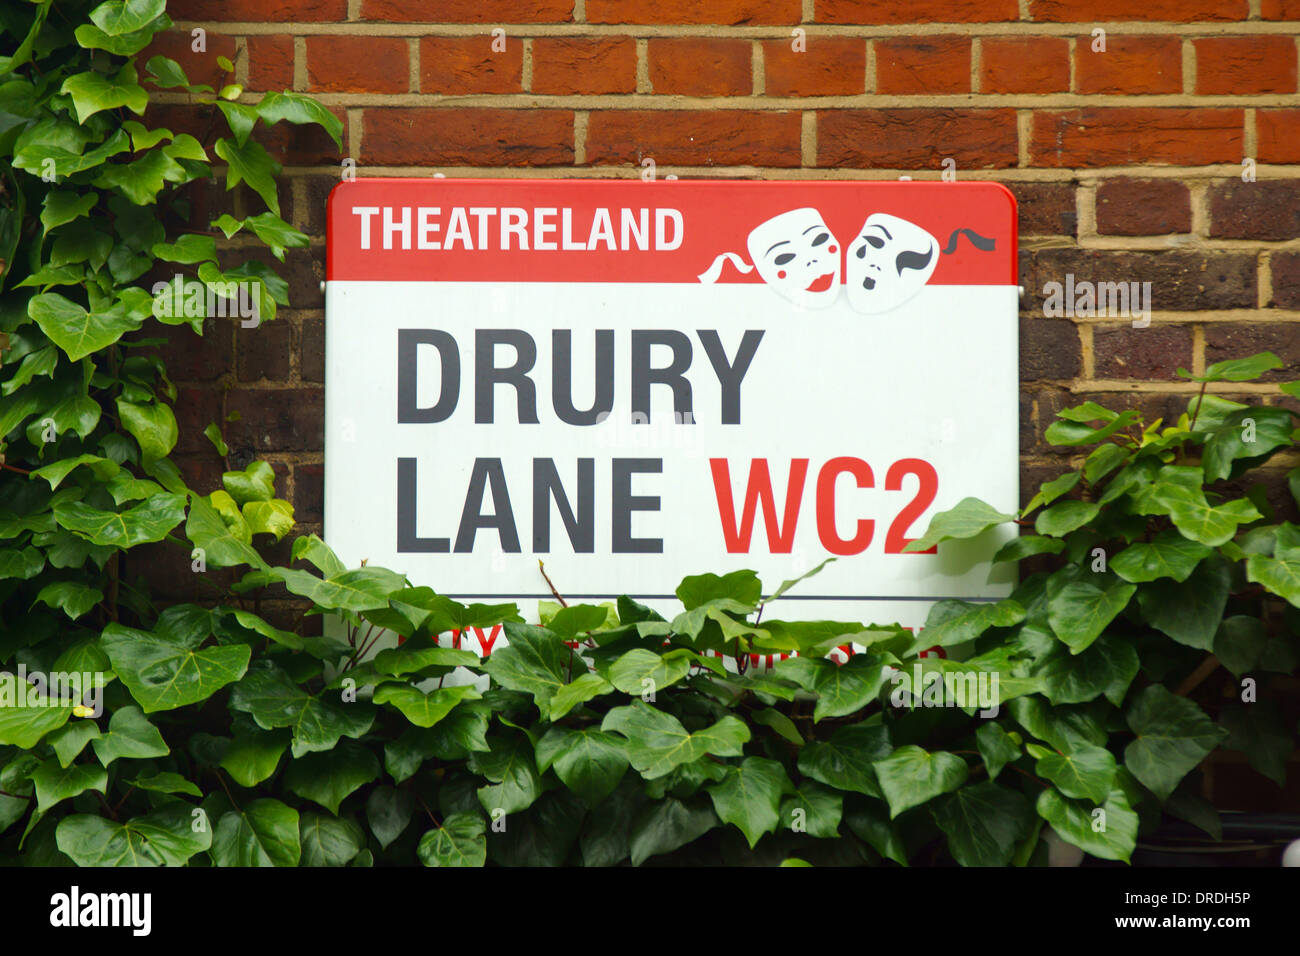 Drury Lane Street Sign Theatreland London - Stock Image